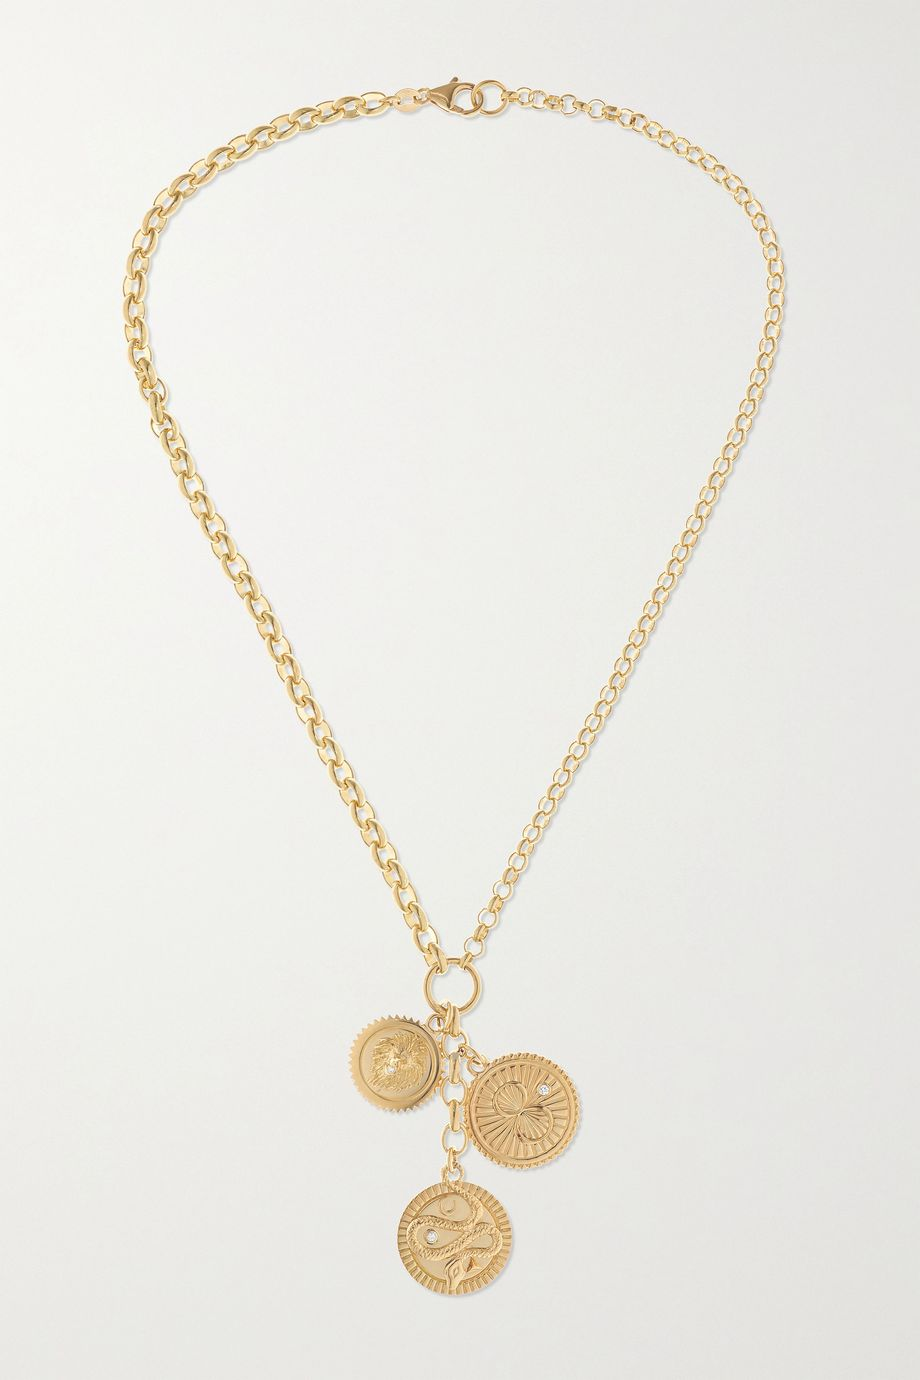 Foundrae Wholeness, Karma and Strength 18-karat gold diamond necklace